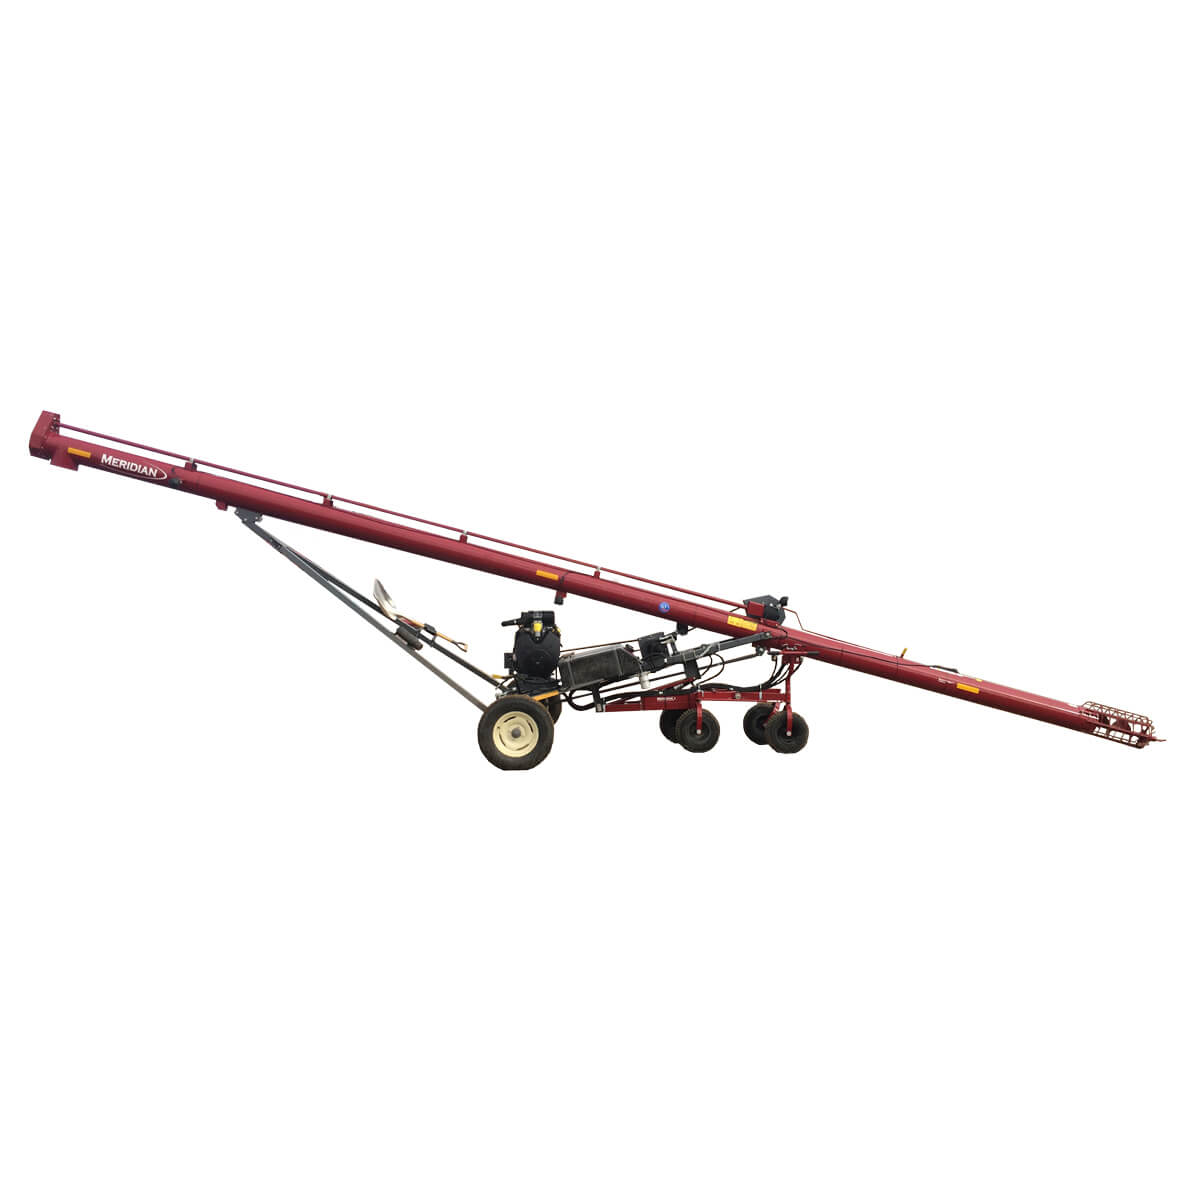 Meridian 8-46 Heavy Duty Conventional Auger